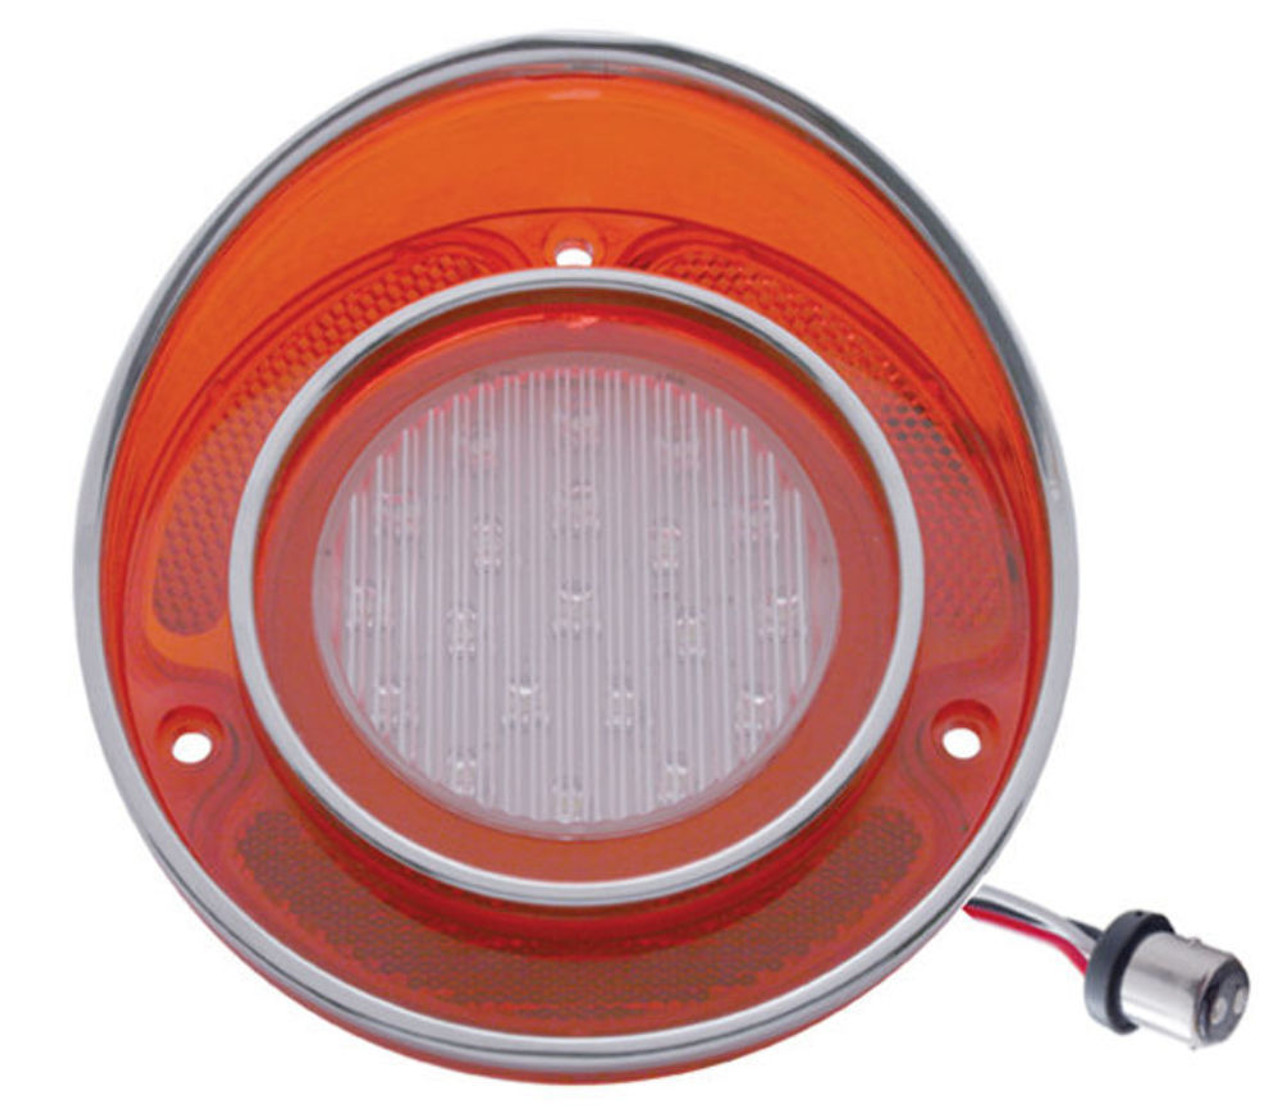 1968 - 1973 Chevy Corvette LED Back-Up Light w/ Stainless Rim, EA